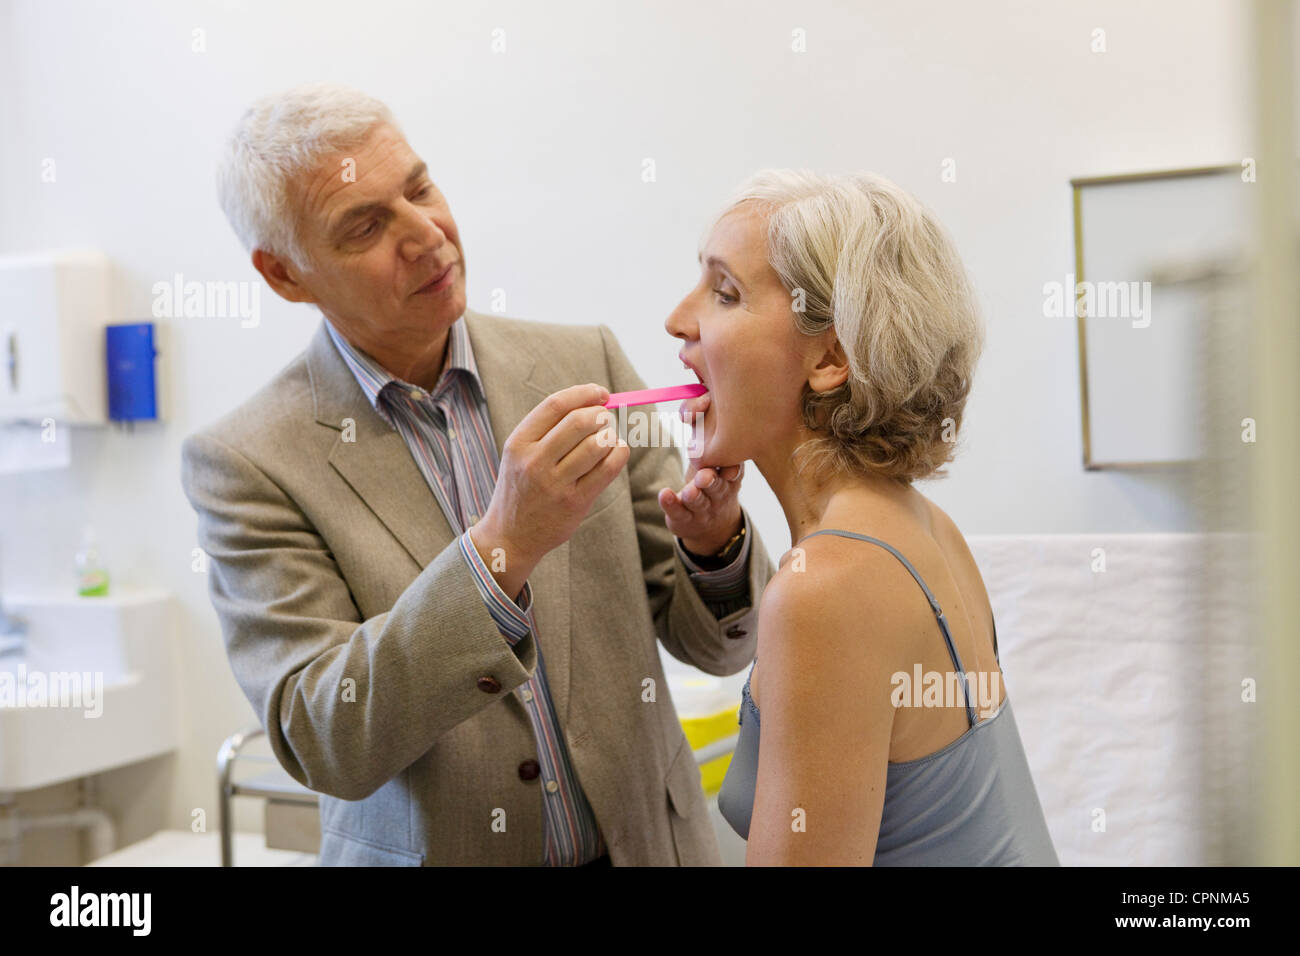 EAR NOSE &THROAT, ELDERLY PERSON - Stock Image